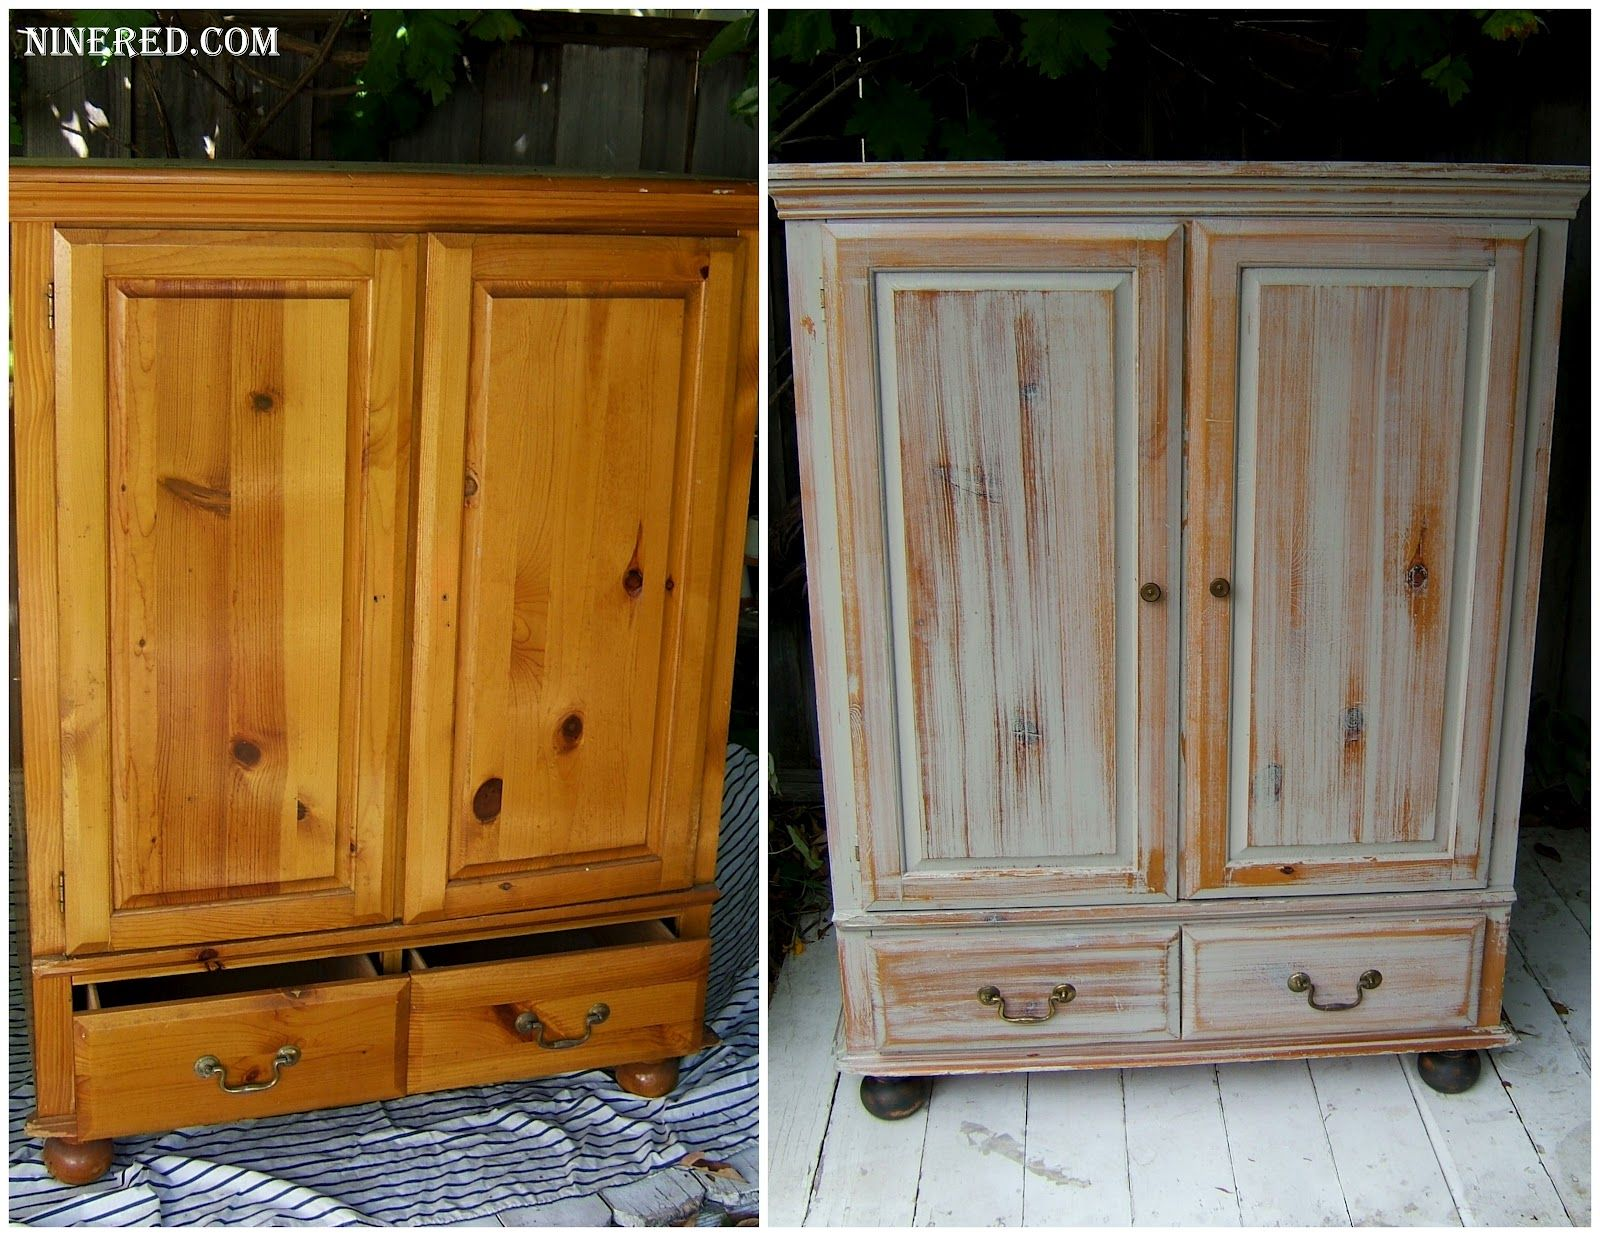 Best 25 Knotty pine cabinets ideas on Pinterest